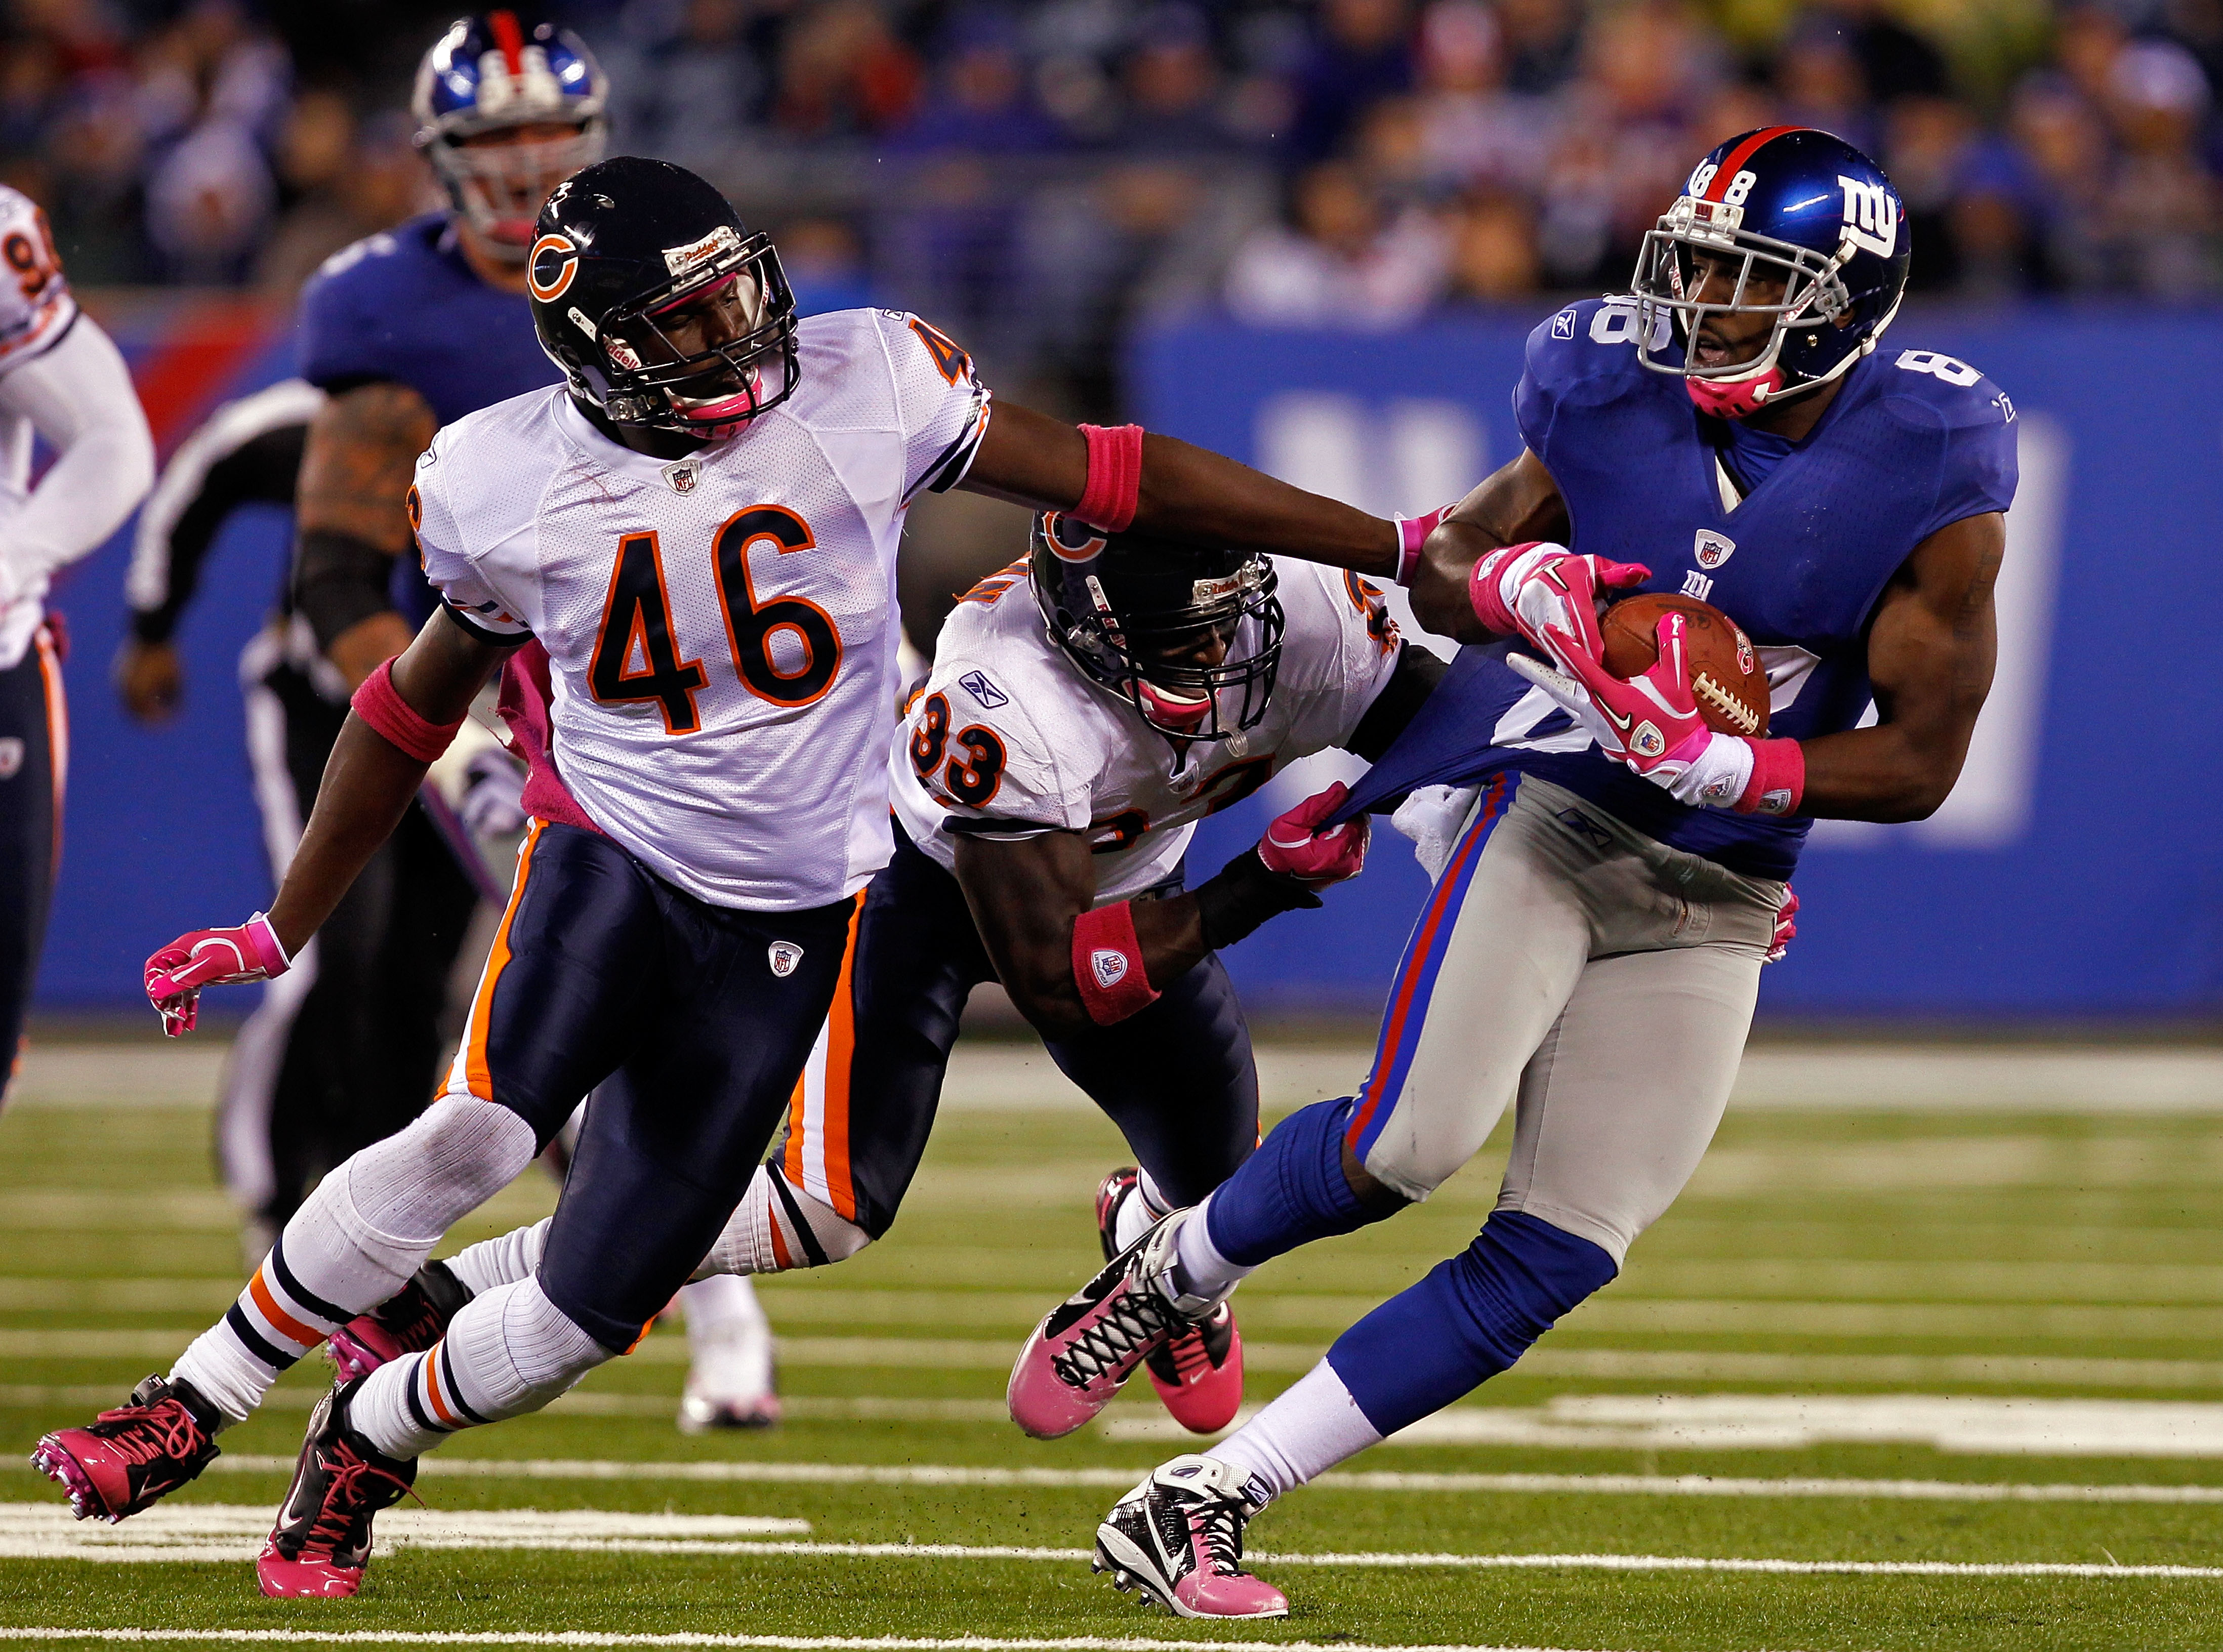 EAST RUTHERFORD, NJ - OCTOBER 03:  Hakeem Nicks #88 of the New York Giants runs with the ball against Chris Harris #46 and Charles Tillman #33 of the Chicago Bears at New Meadowlands Stadium on October 3, 2010 in East Rutherford, New Jersey.  (Photo by Mi